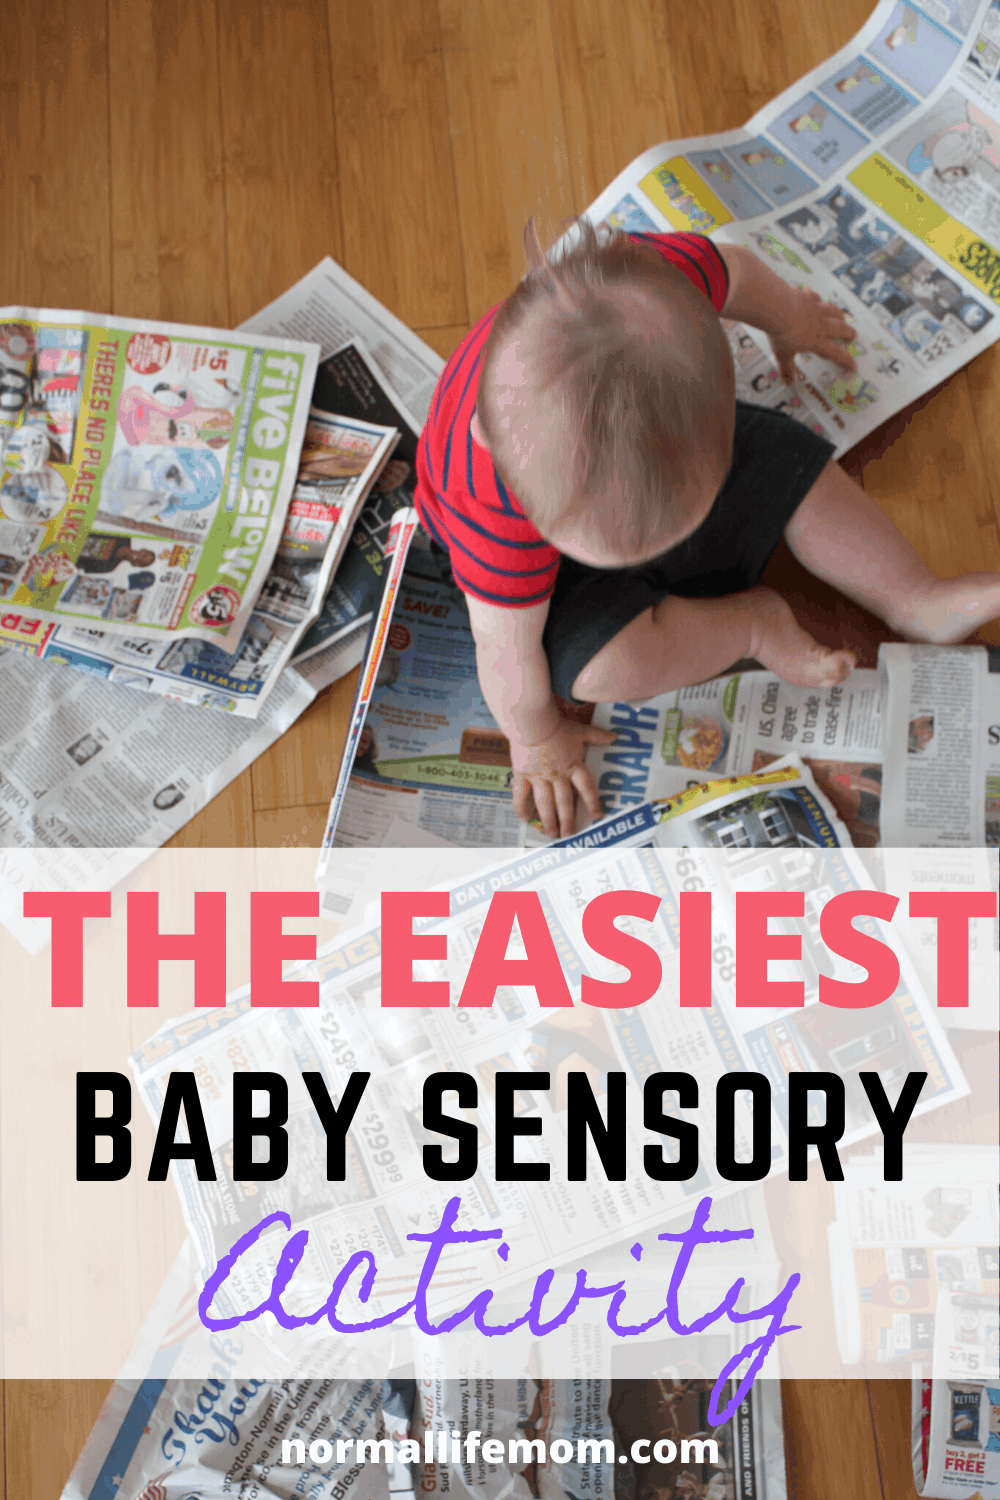 Easy baby sensory play! Set up this easy activity in no time and watch your child have endless fun #babysensoryplay #sensoryplay #sensoryactivities #babysensoryideas #sensoryplaybaby #babyactivities